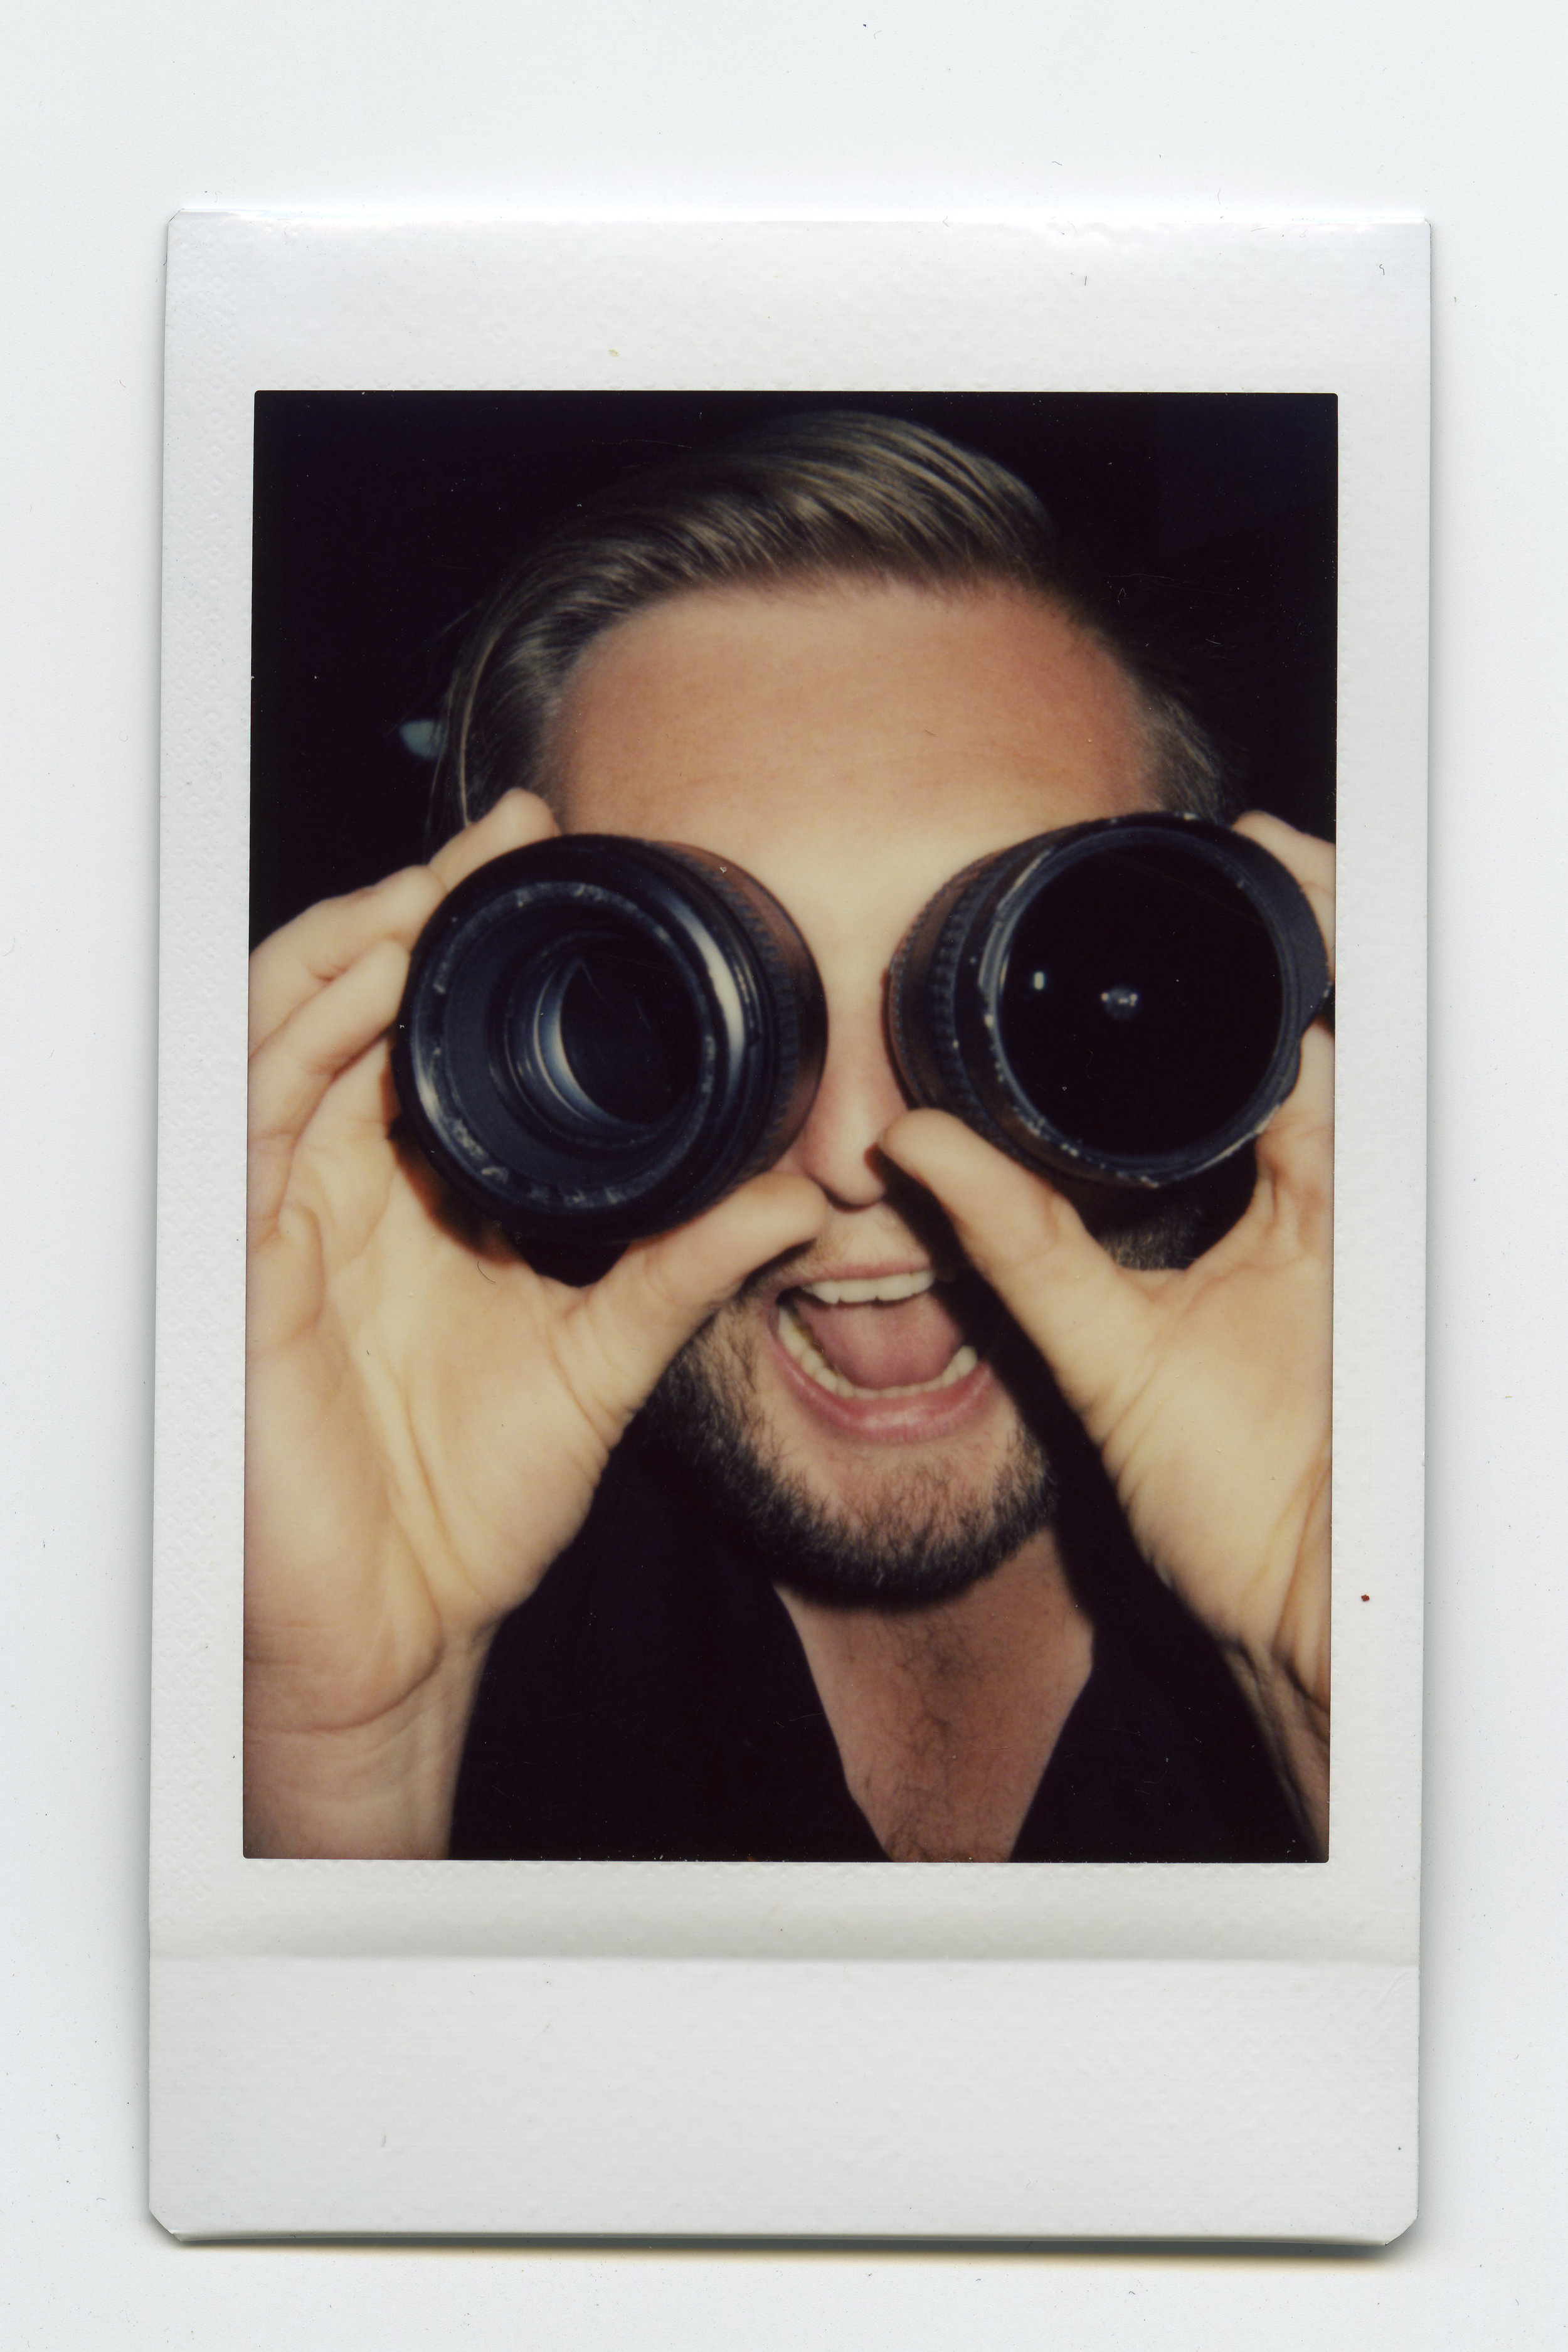 Obsessed - Shot with Fujifilm Neo90 Camera with Fuji Instant Film - Nashville, TN